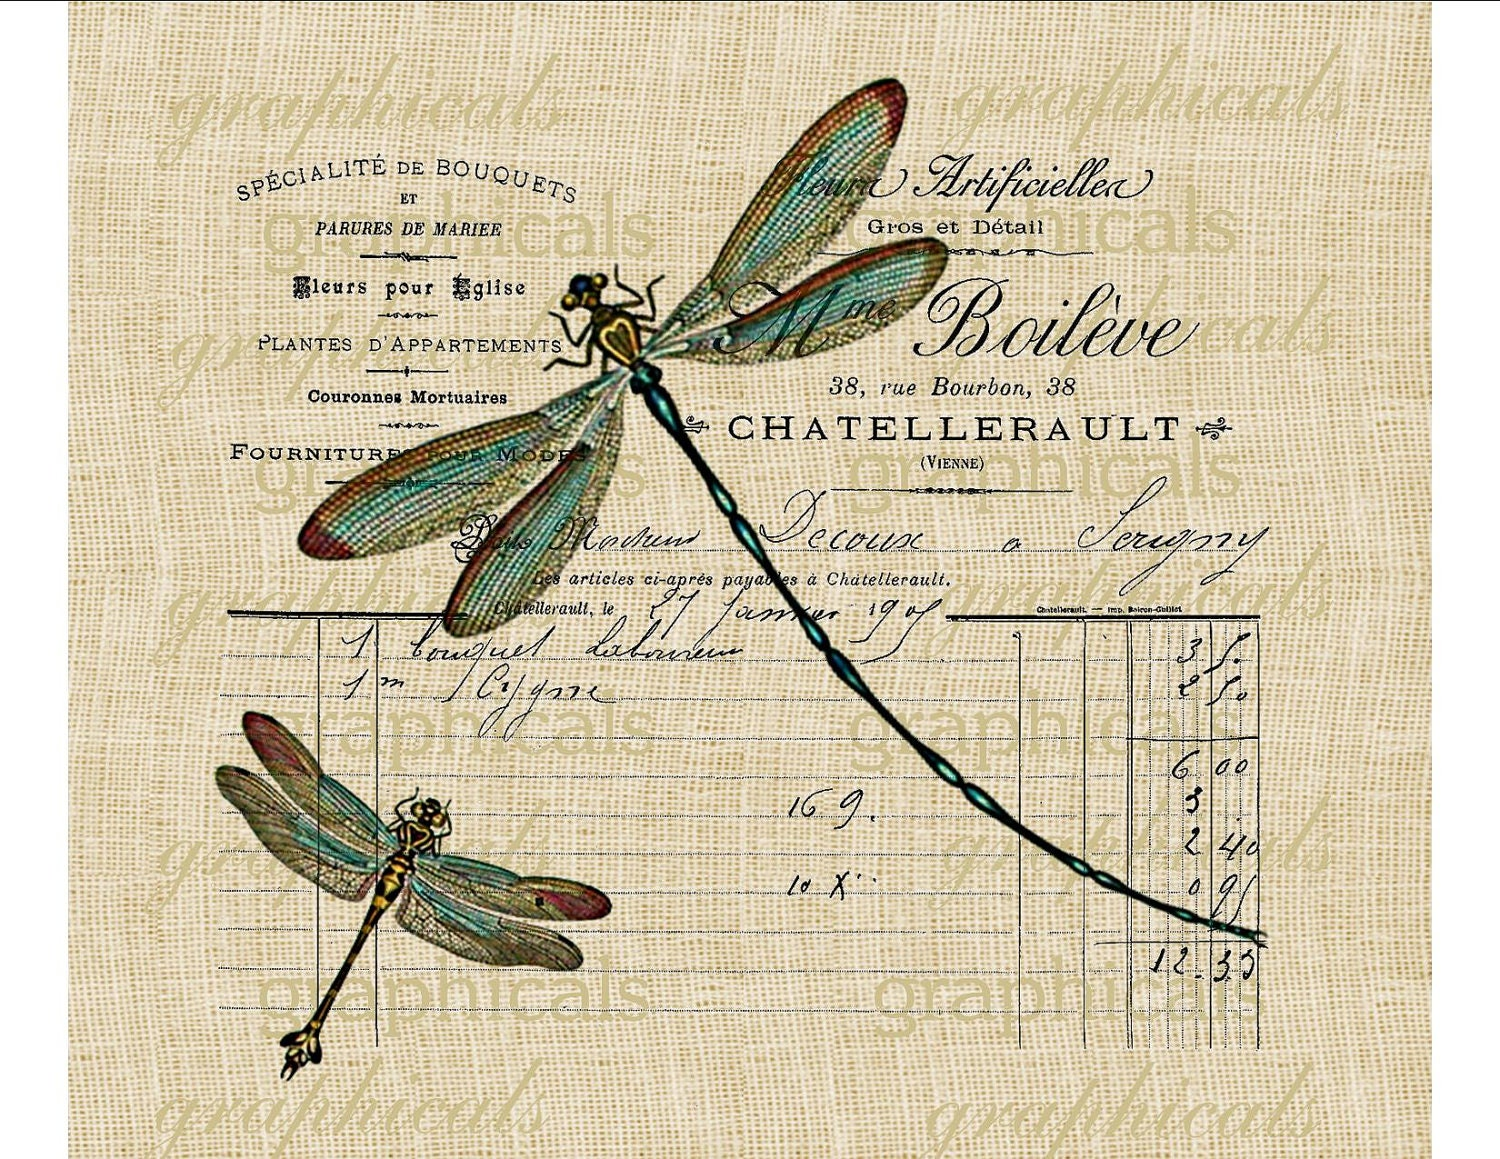 Dragonfly arts and crafts - Teal Dragonflies Paris French Ephemera Instant Digital Download Image For Iron On Fabric Transfer Paper Burlap